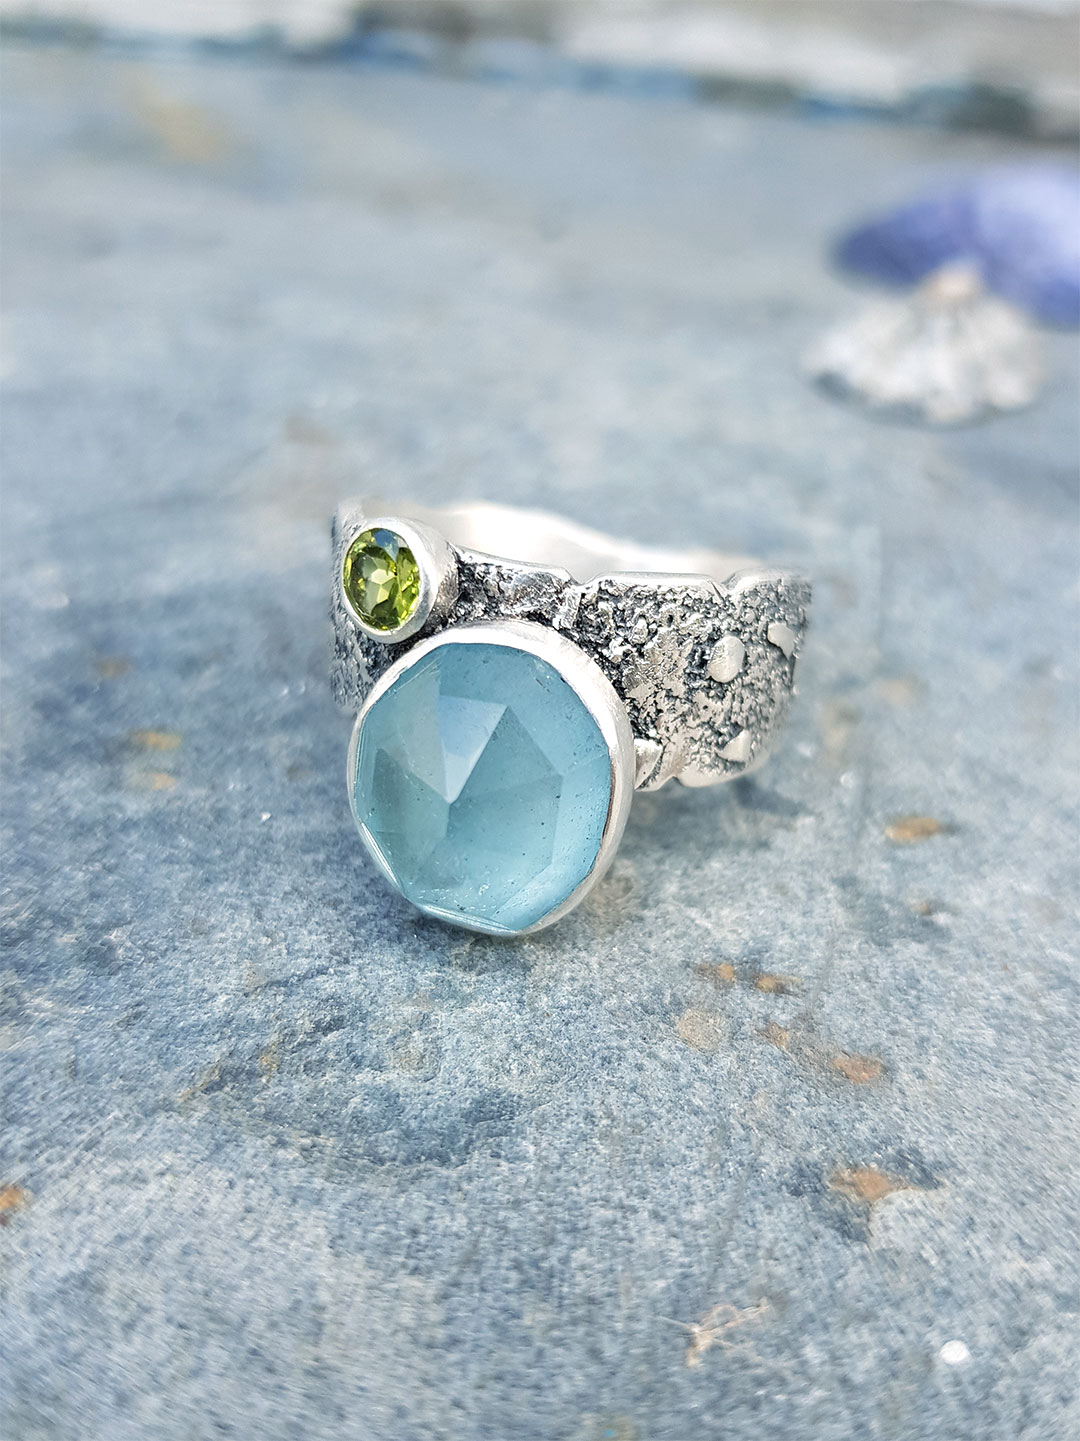 Aquamarine ring commission